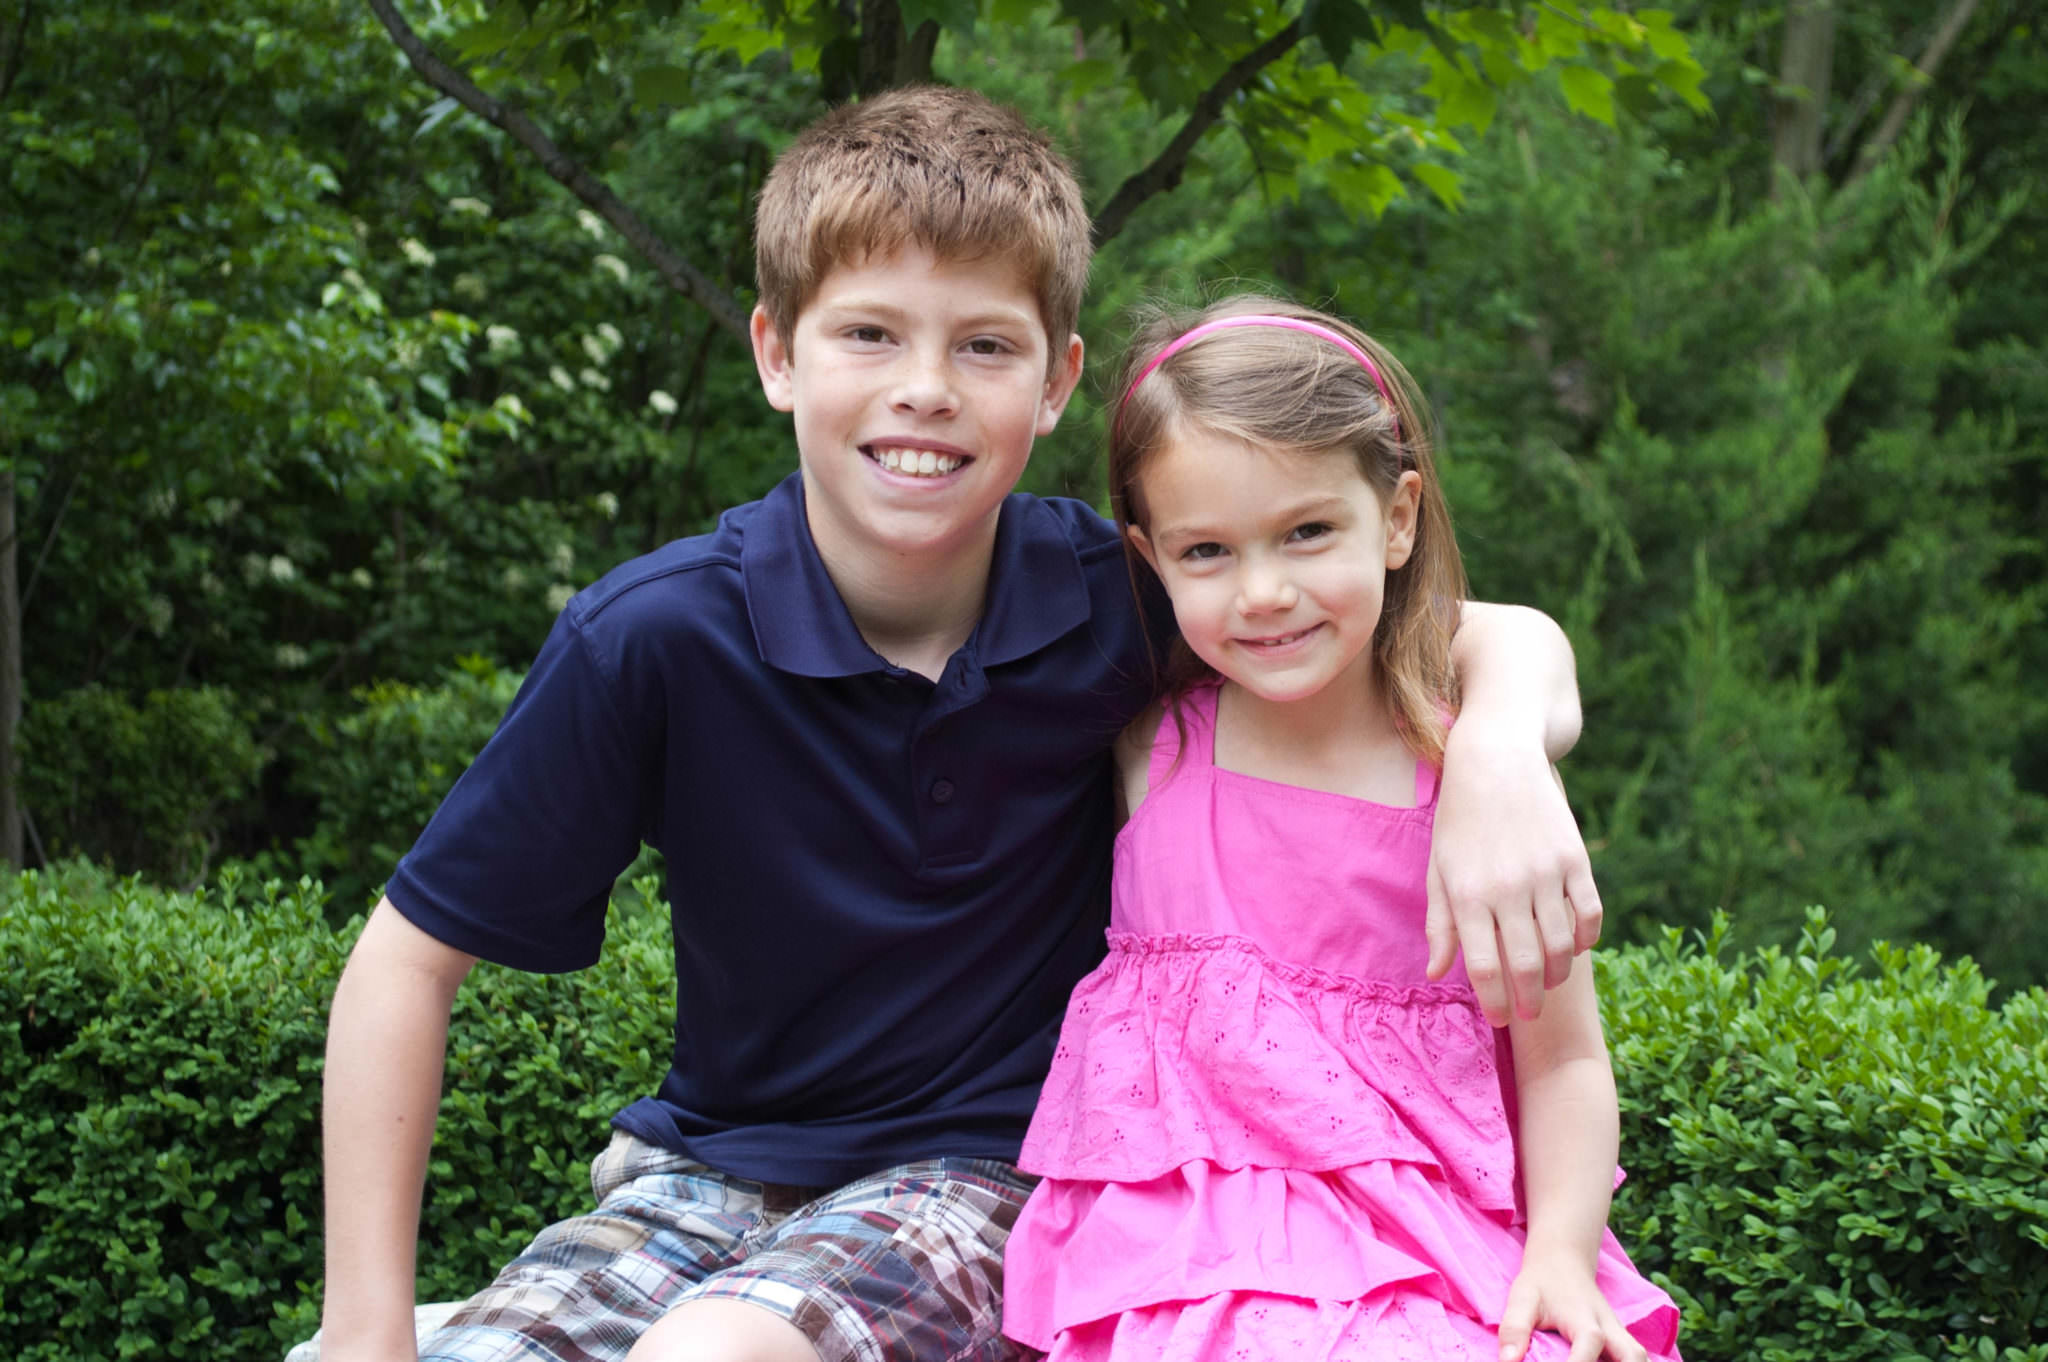 Brother and sister, Northville Family Photography